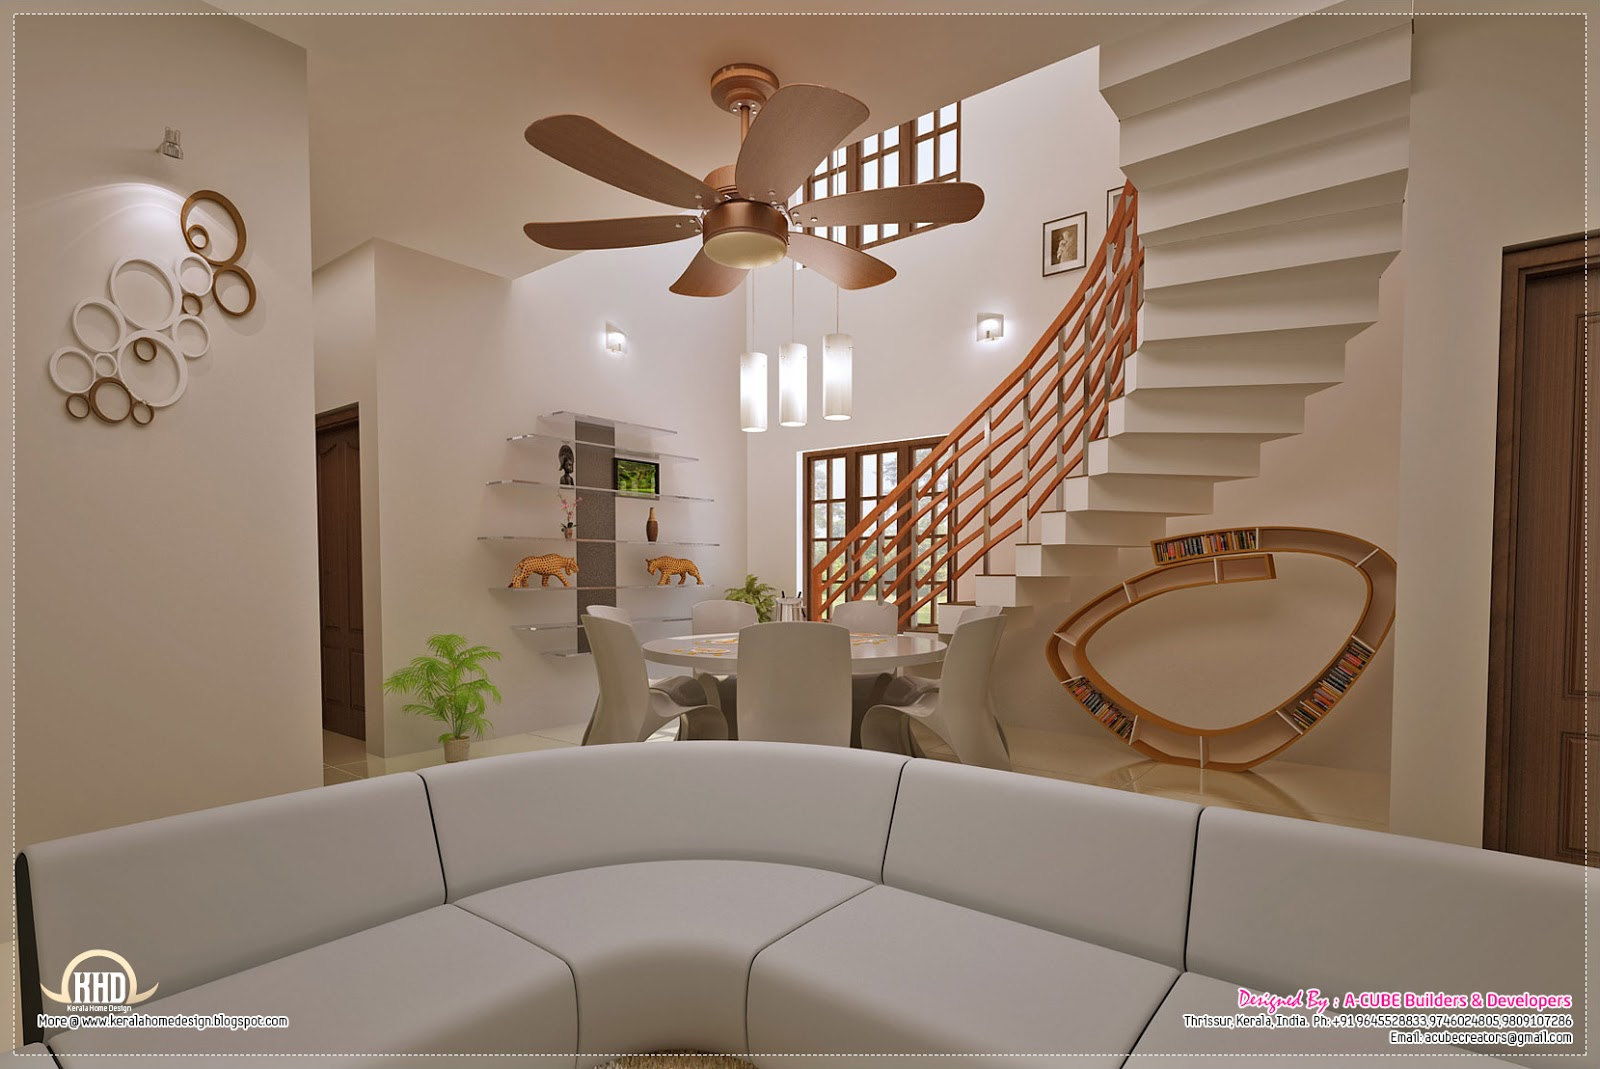 Awesome interior decoration ideas home kerala plans for Interior design ideas